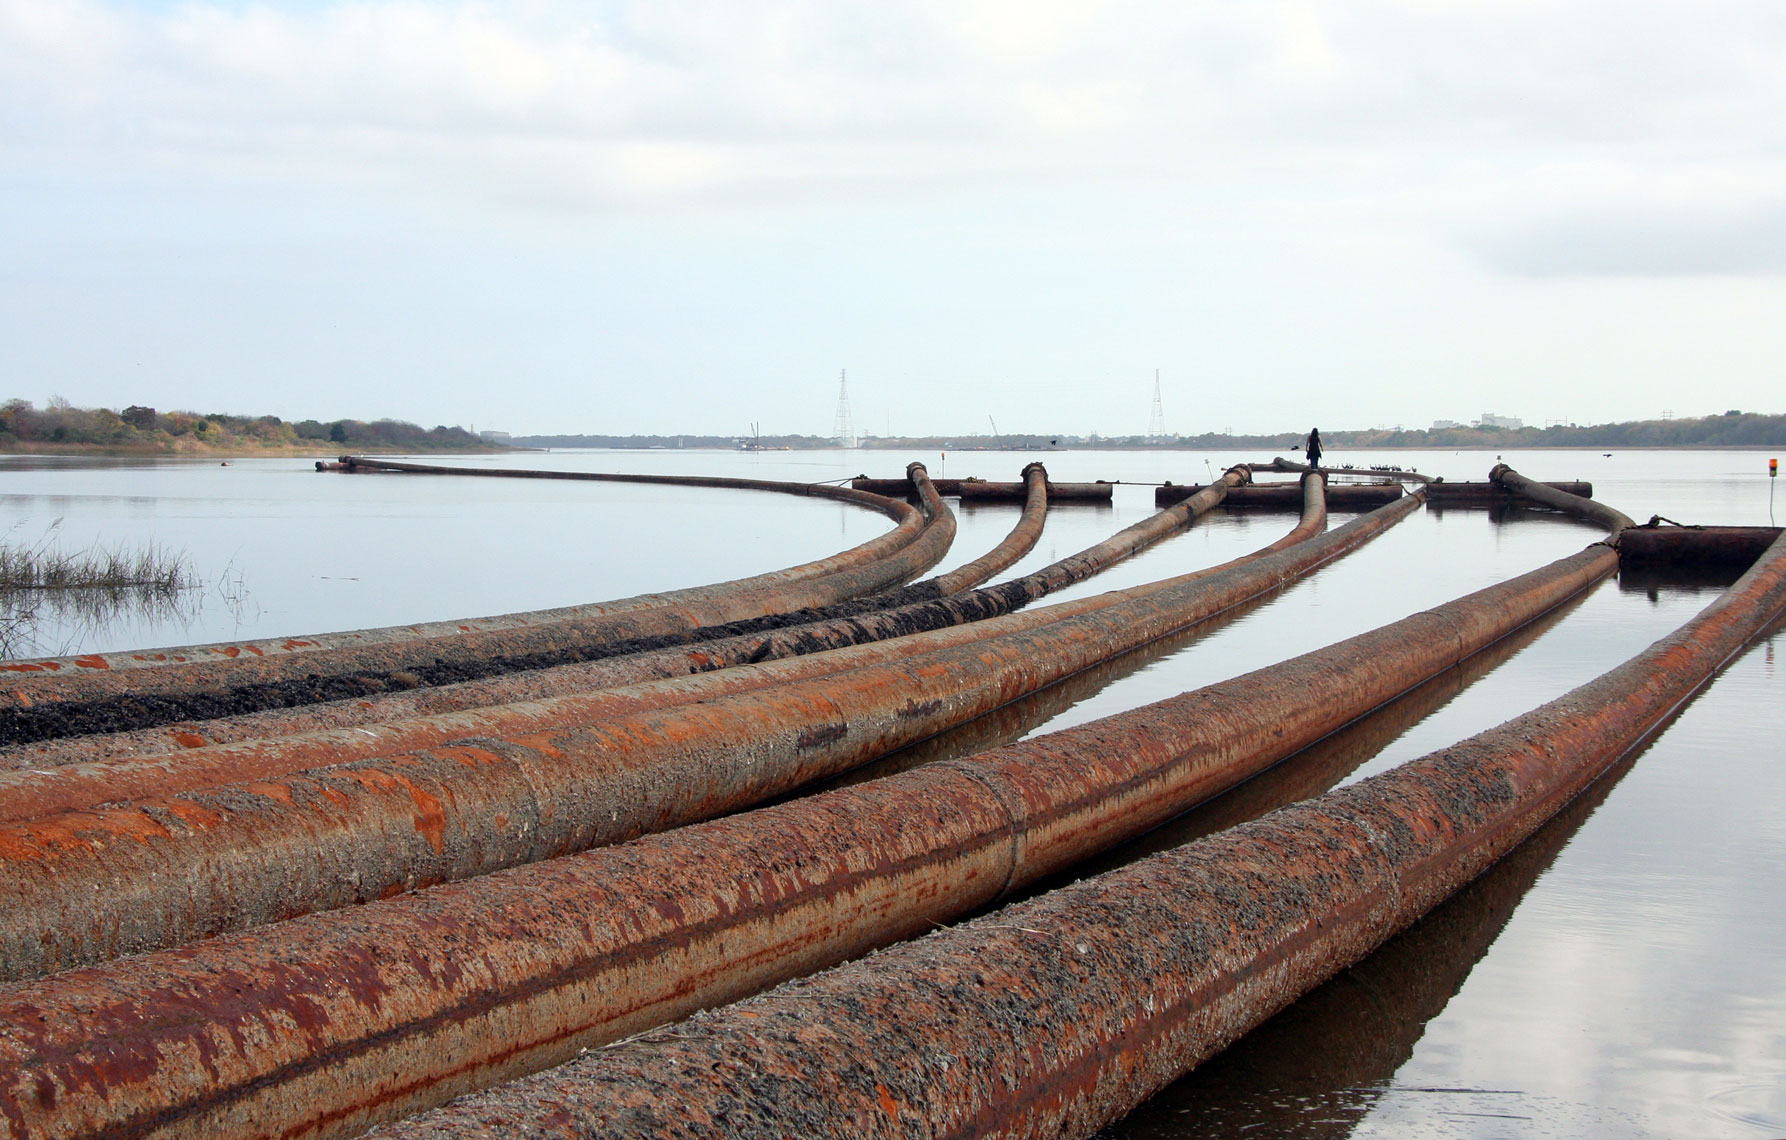 walking-along-the-dredge-pipes